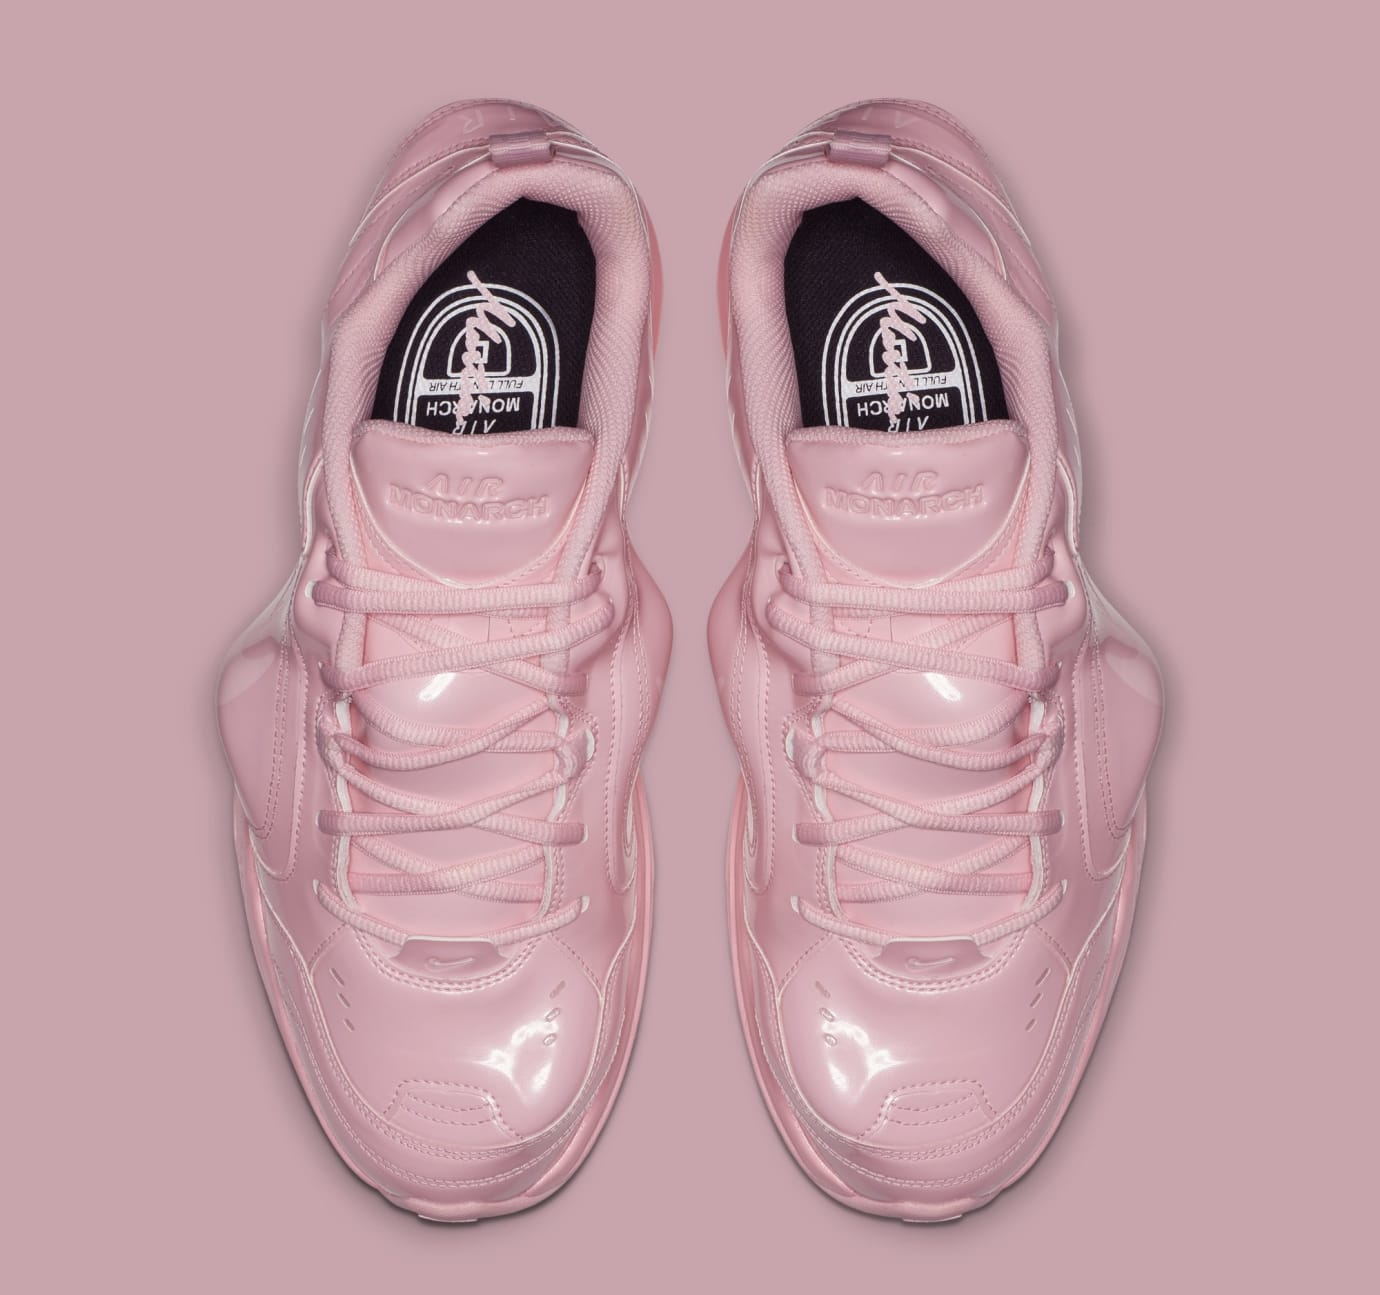 5c2024383b0 Image via Nike Martine Rose x Nike Air Monarch 4  Medium Soft Pink   AT3147-600 (